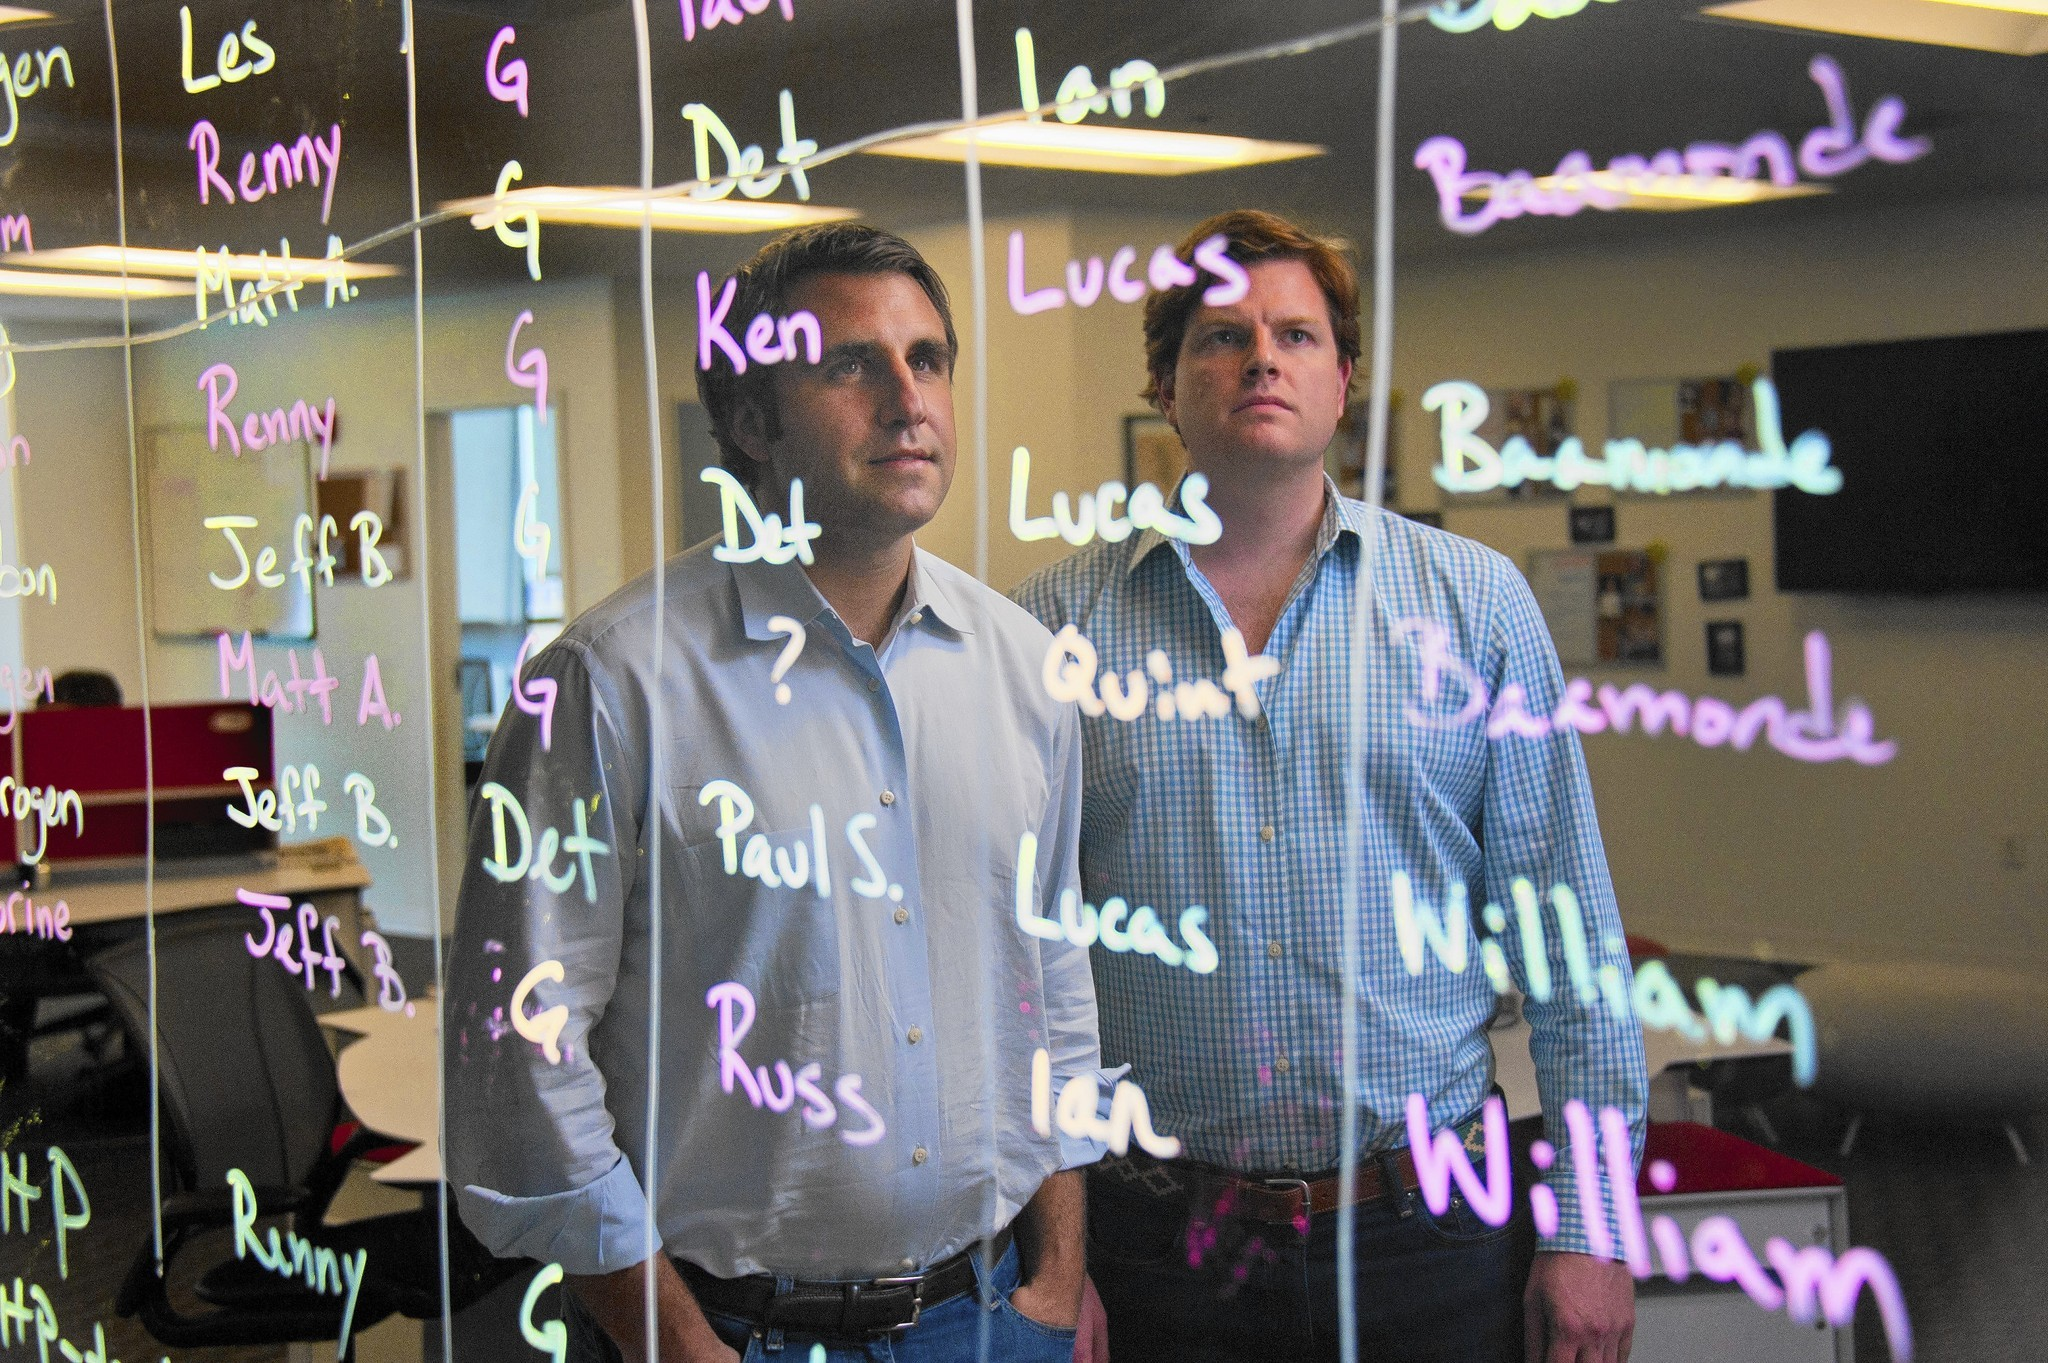 Co-founders Guy Filippelli (left) and Renny McPherson are reflected on a board with names of team members at RedOwl Tuesday, Jun 24, 2014.